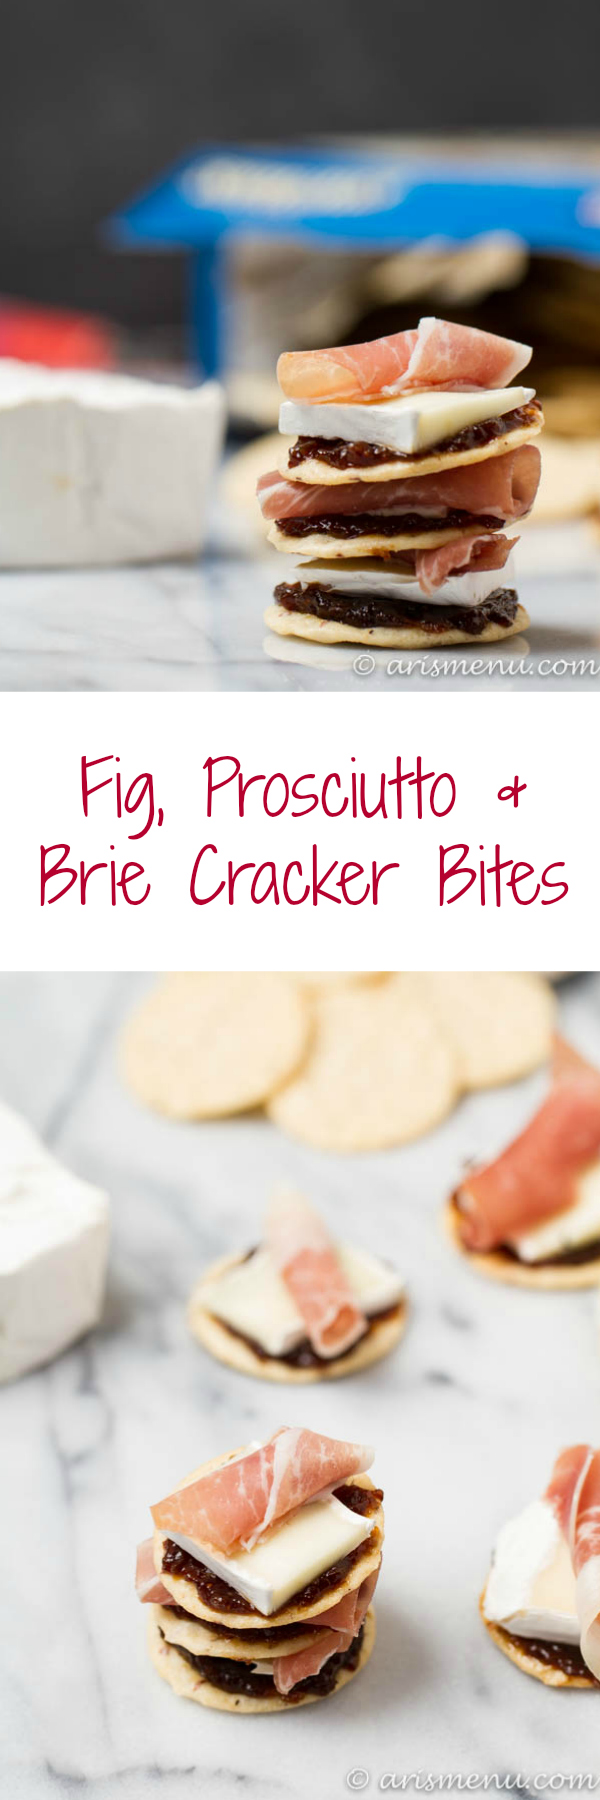 Fig, Prosciutto & Brie Cracker Bites: The perfect easy and delicious appetizer or snack!